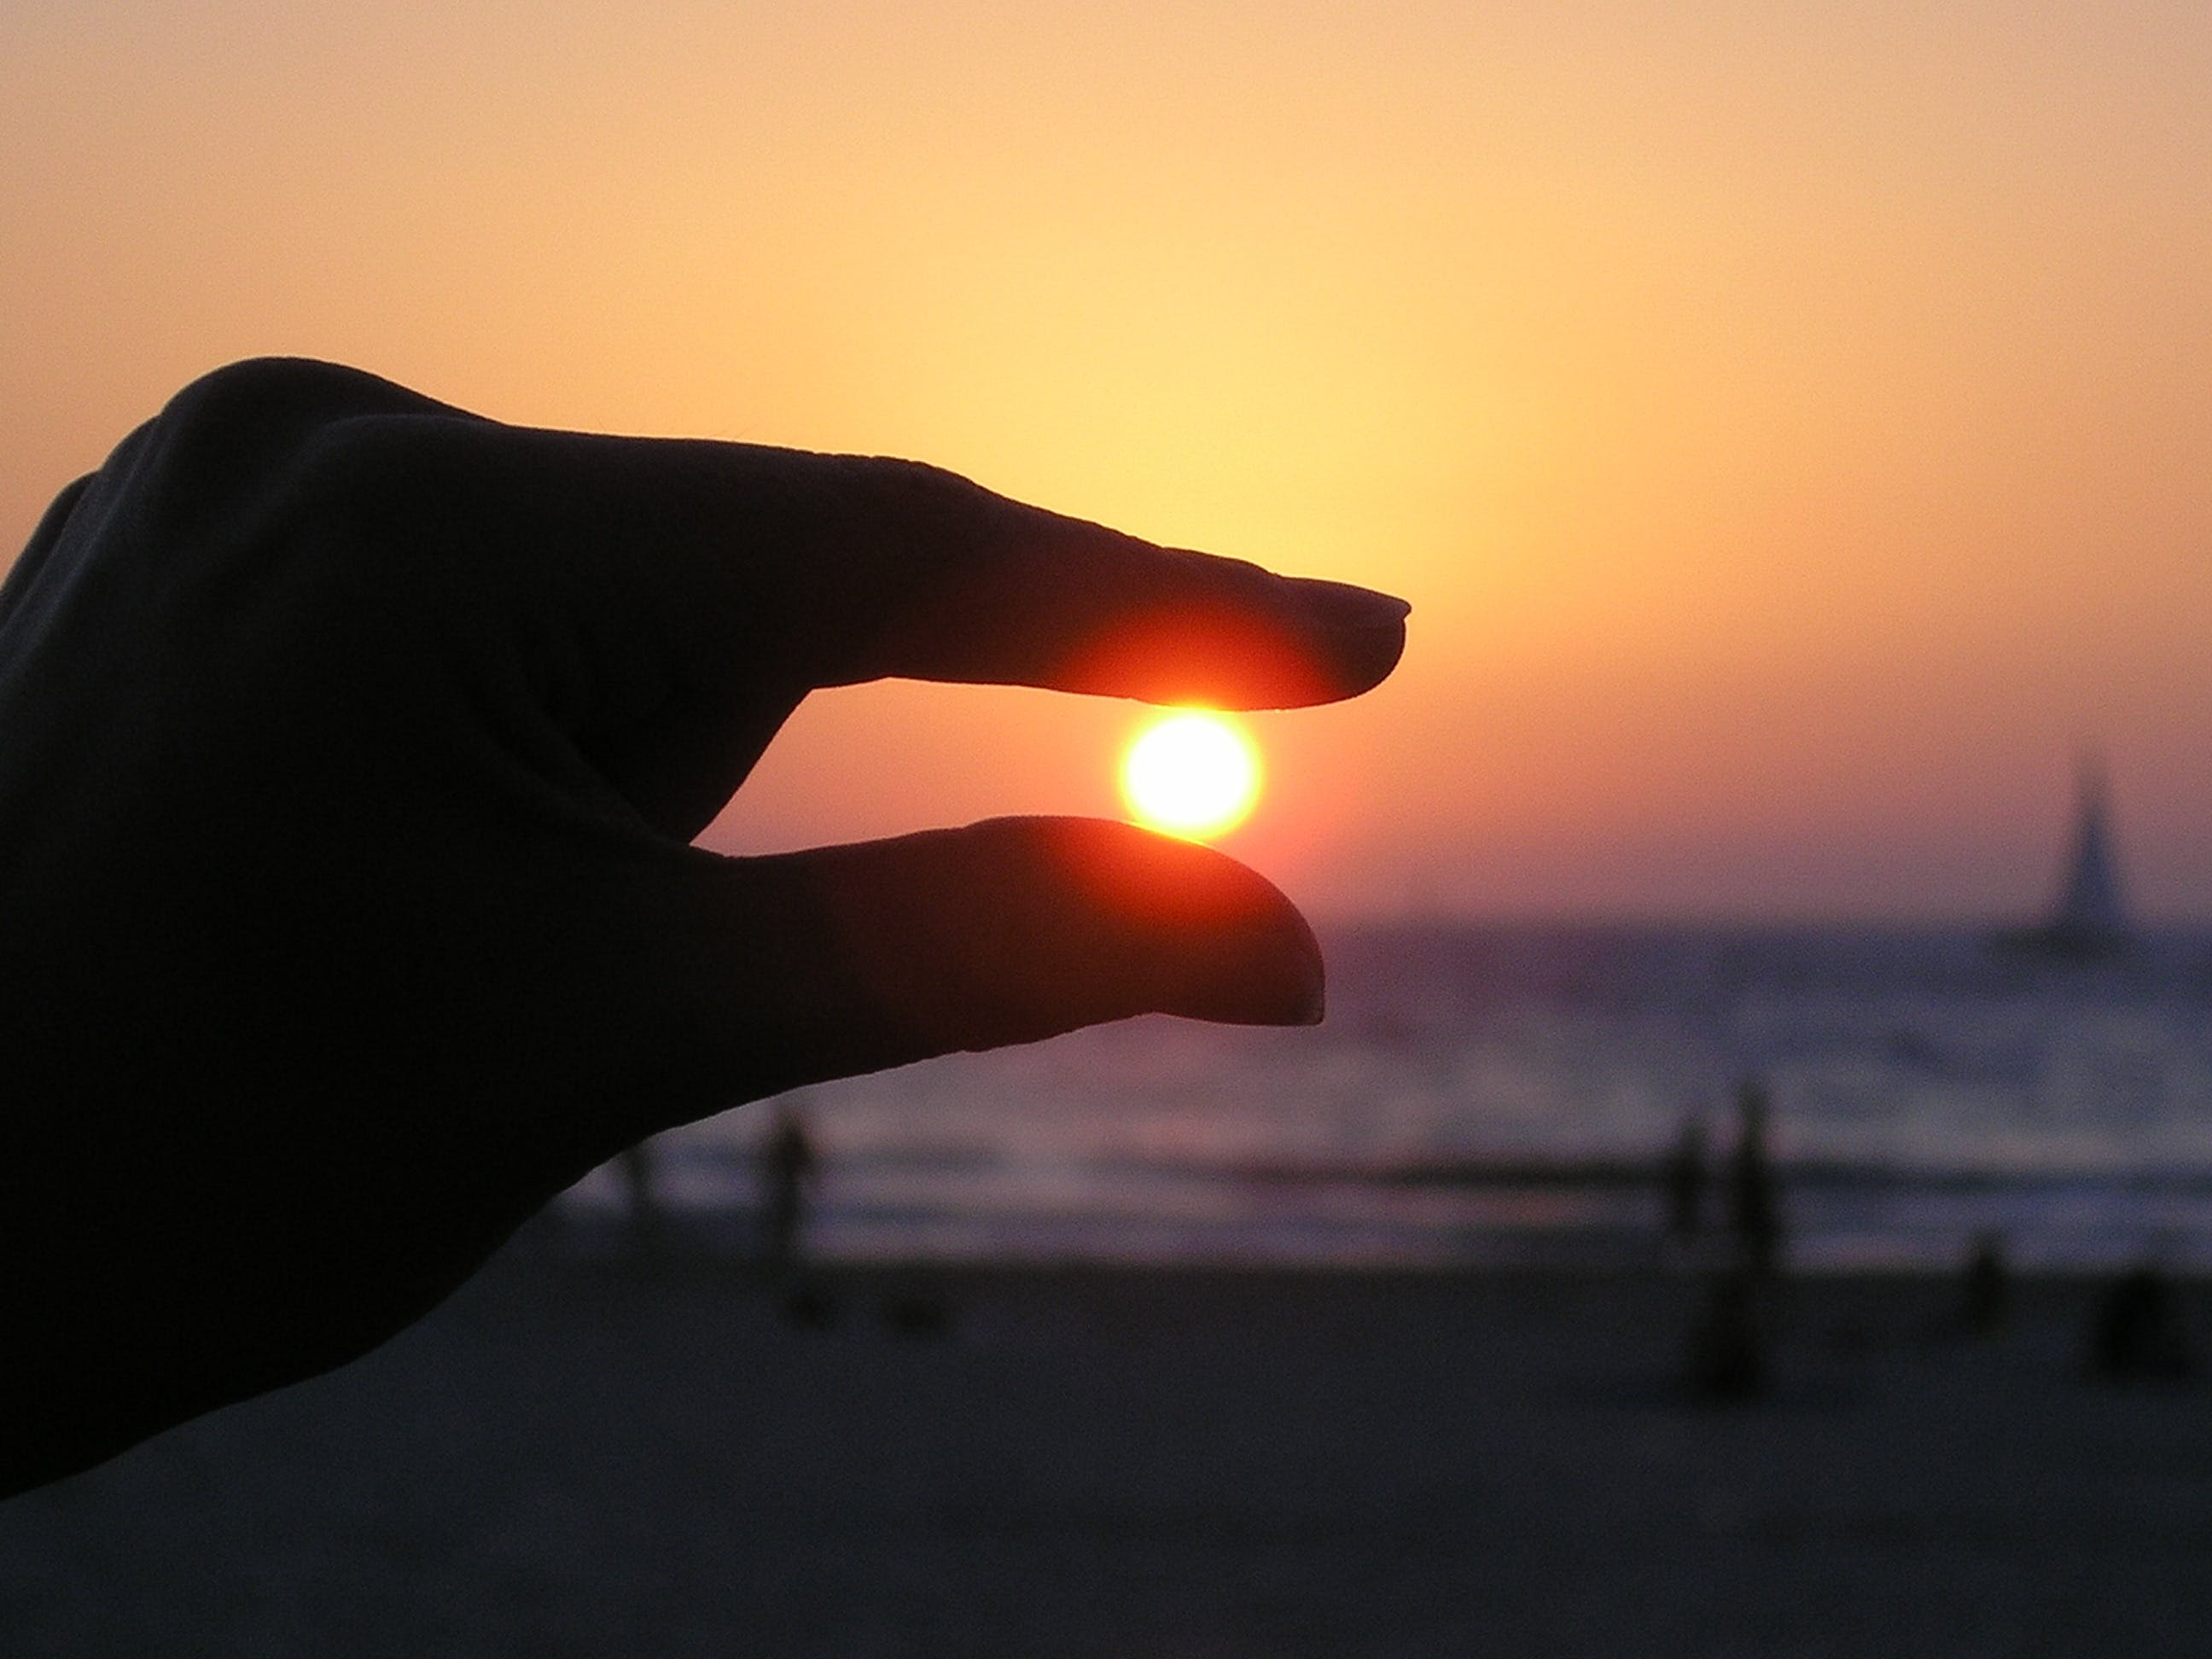 Force Perspective Photo of Person Holding Sun